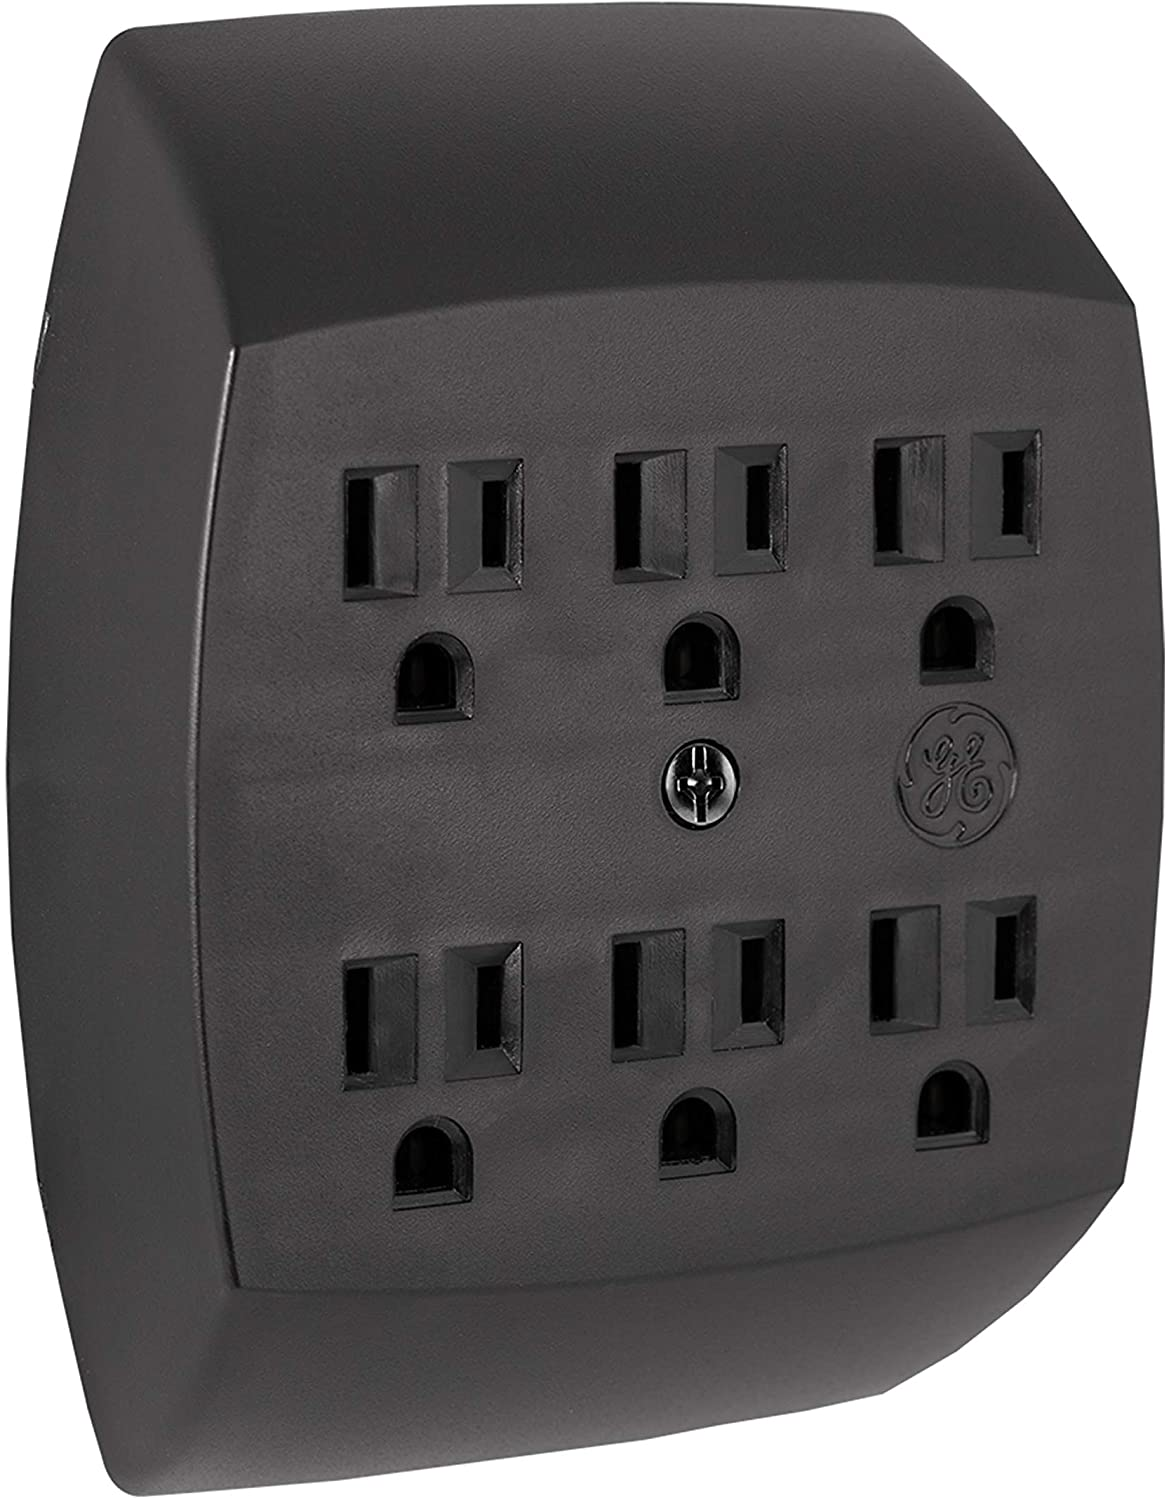 US SELLER SUNBEAM —POWER XTENSION— 6 OUTLET—GROUNDED—WALL TAP—ADAPTER FREE S/&H